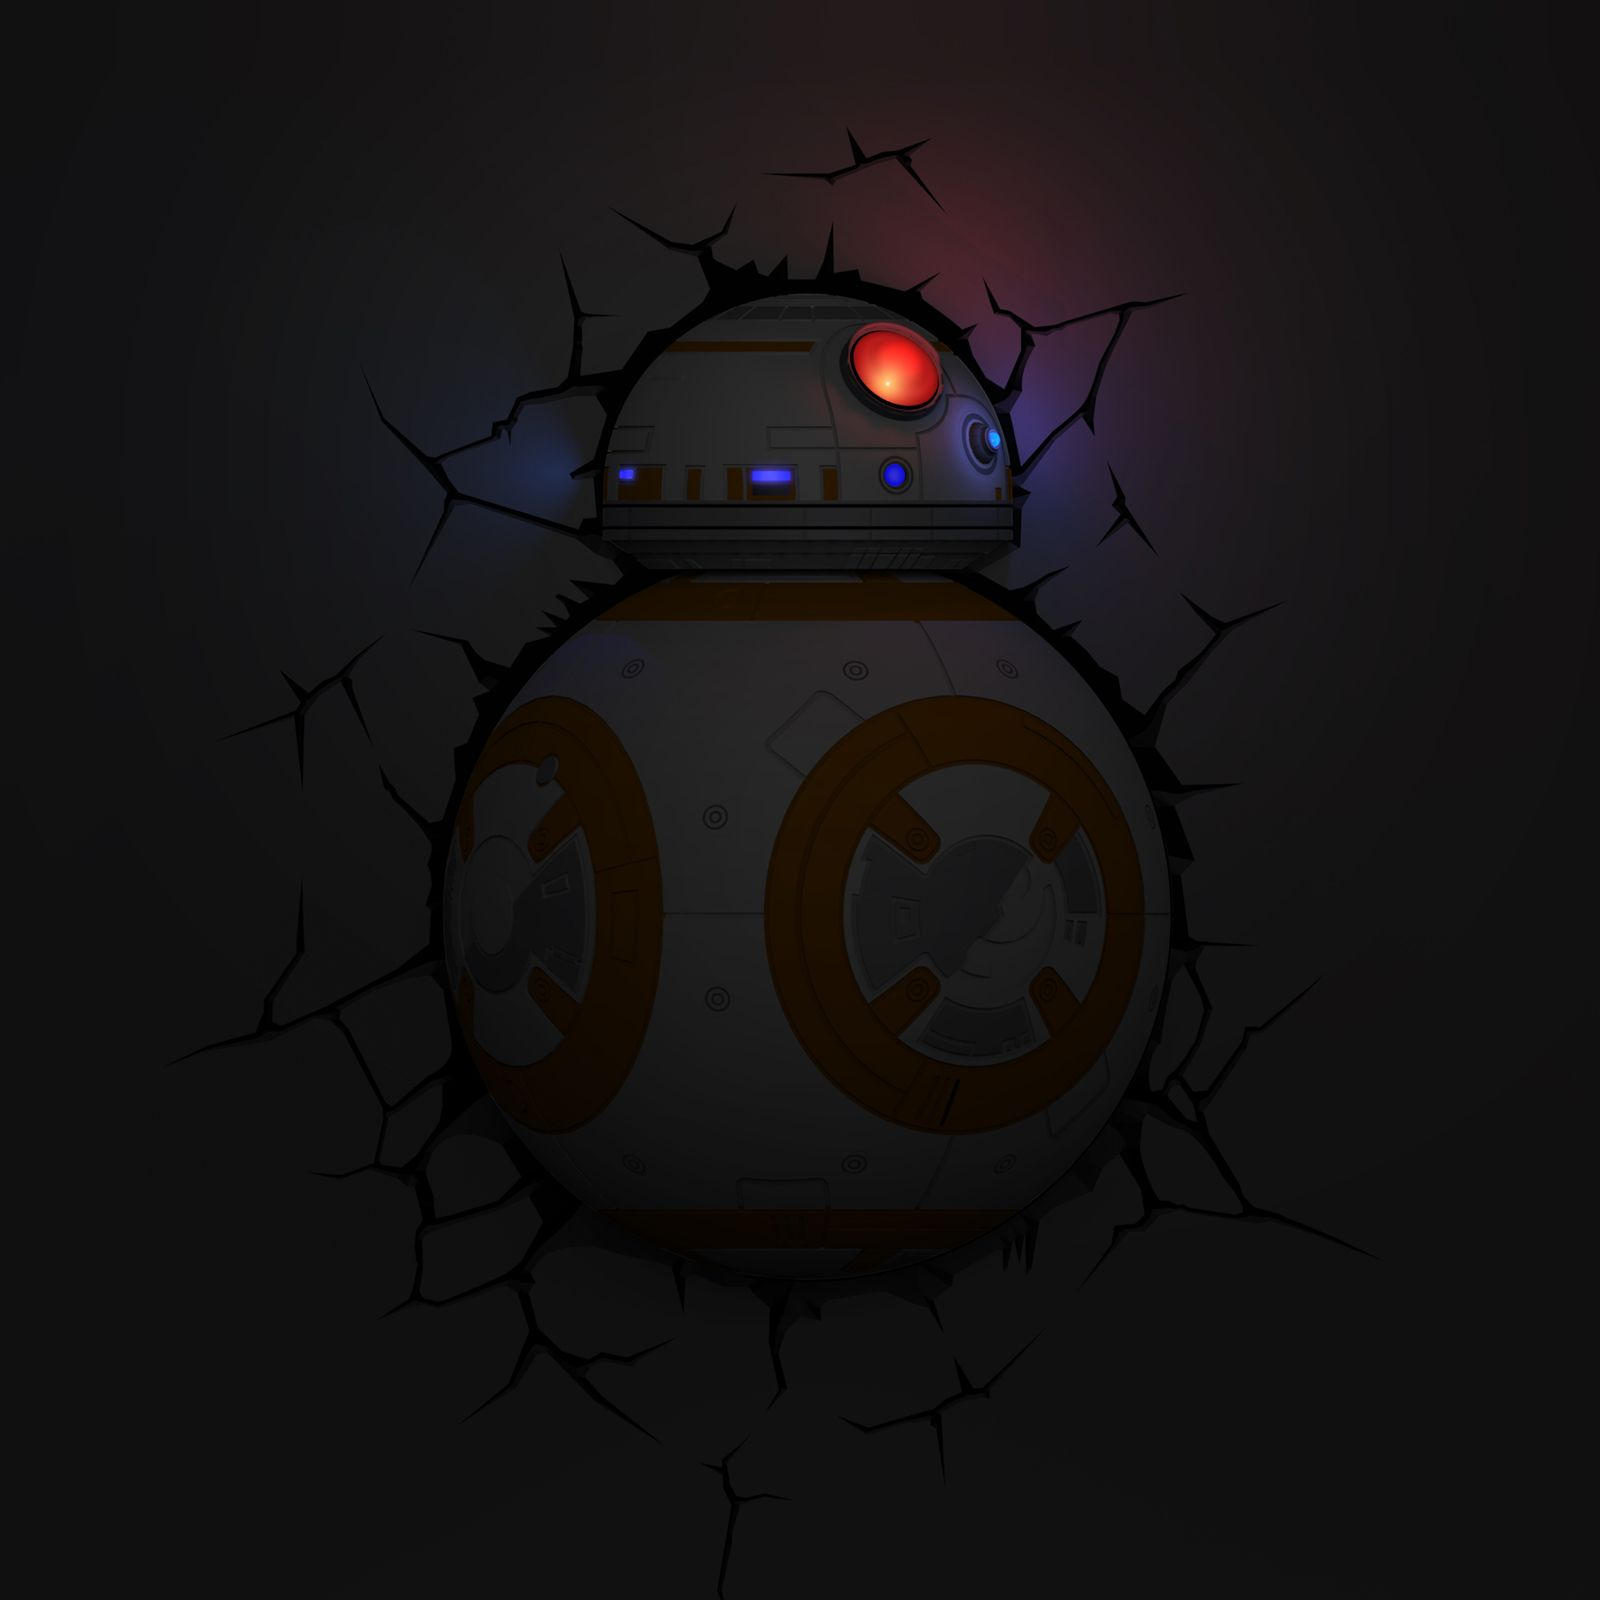 3d Wall Night Lights Star Wars Bb 8 3d Led Decor Wall Light Night Lamp With